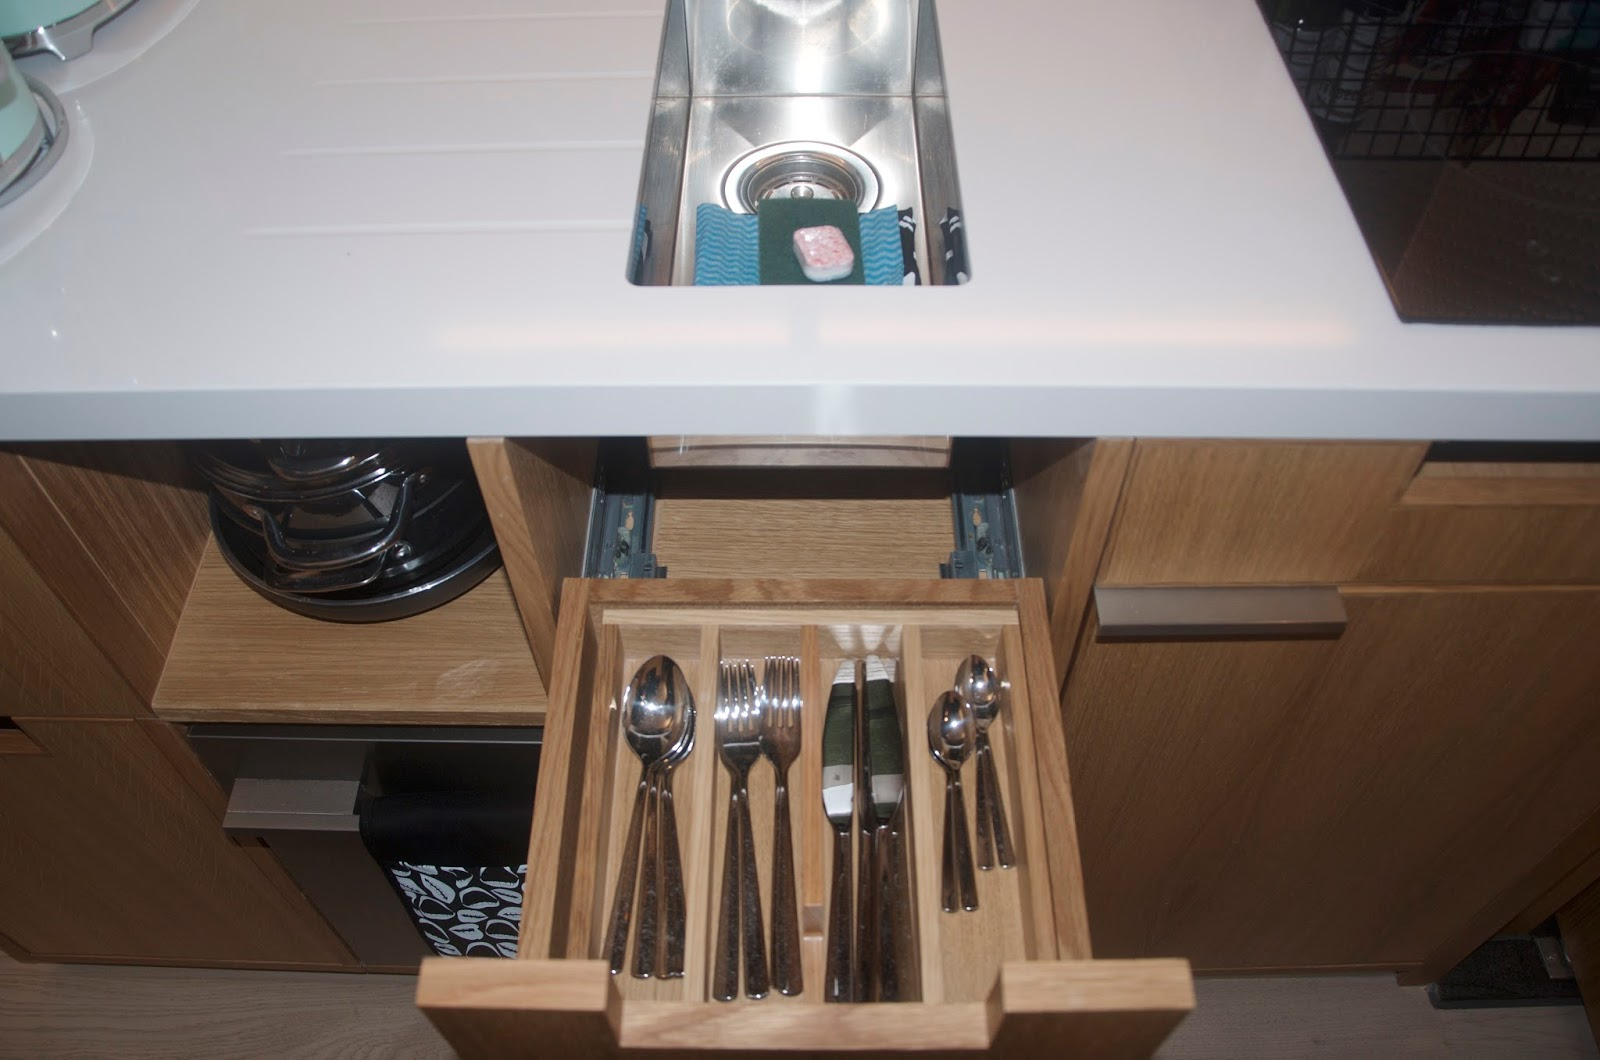 kitchenette with silverware and utensils